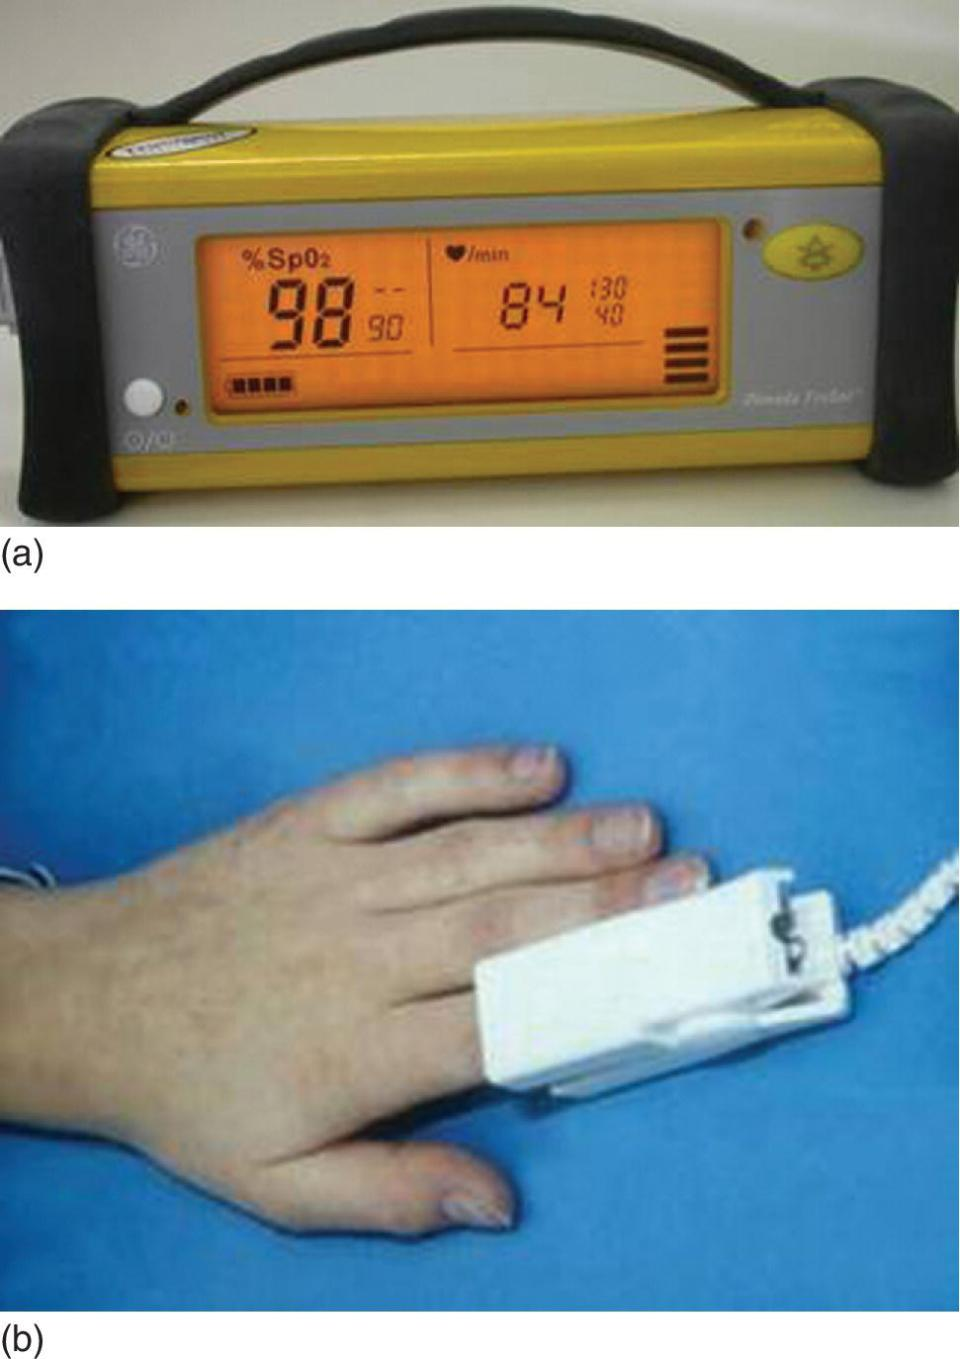 A pulse oximeter (top) and a hand with a probe attached to the index finger (bottom).